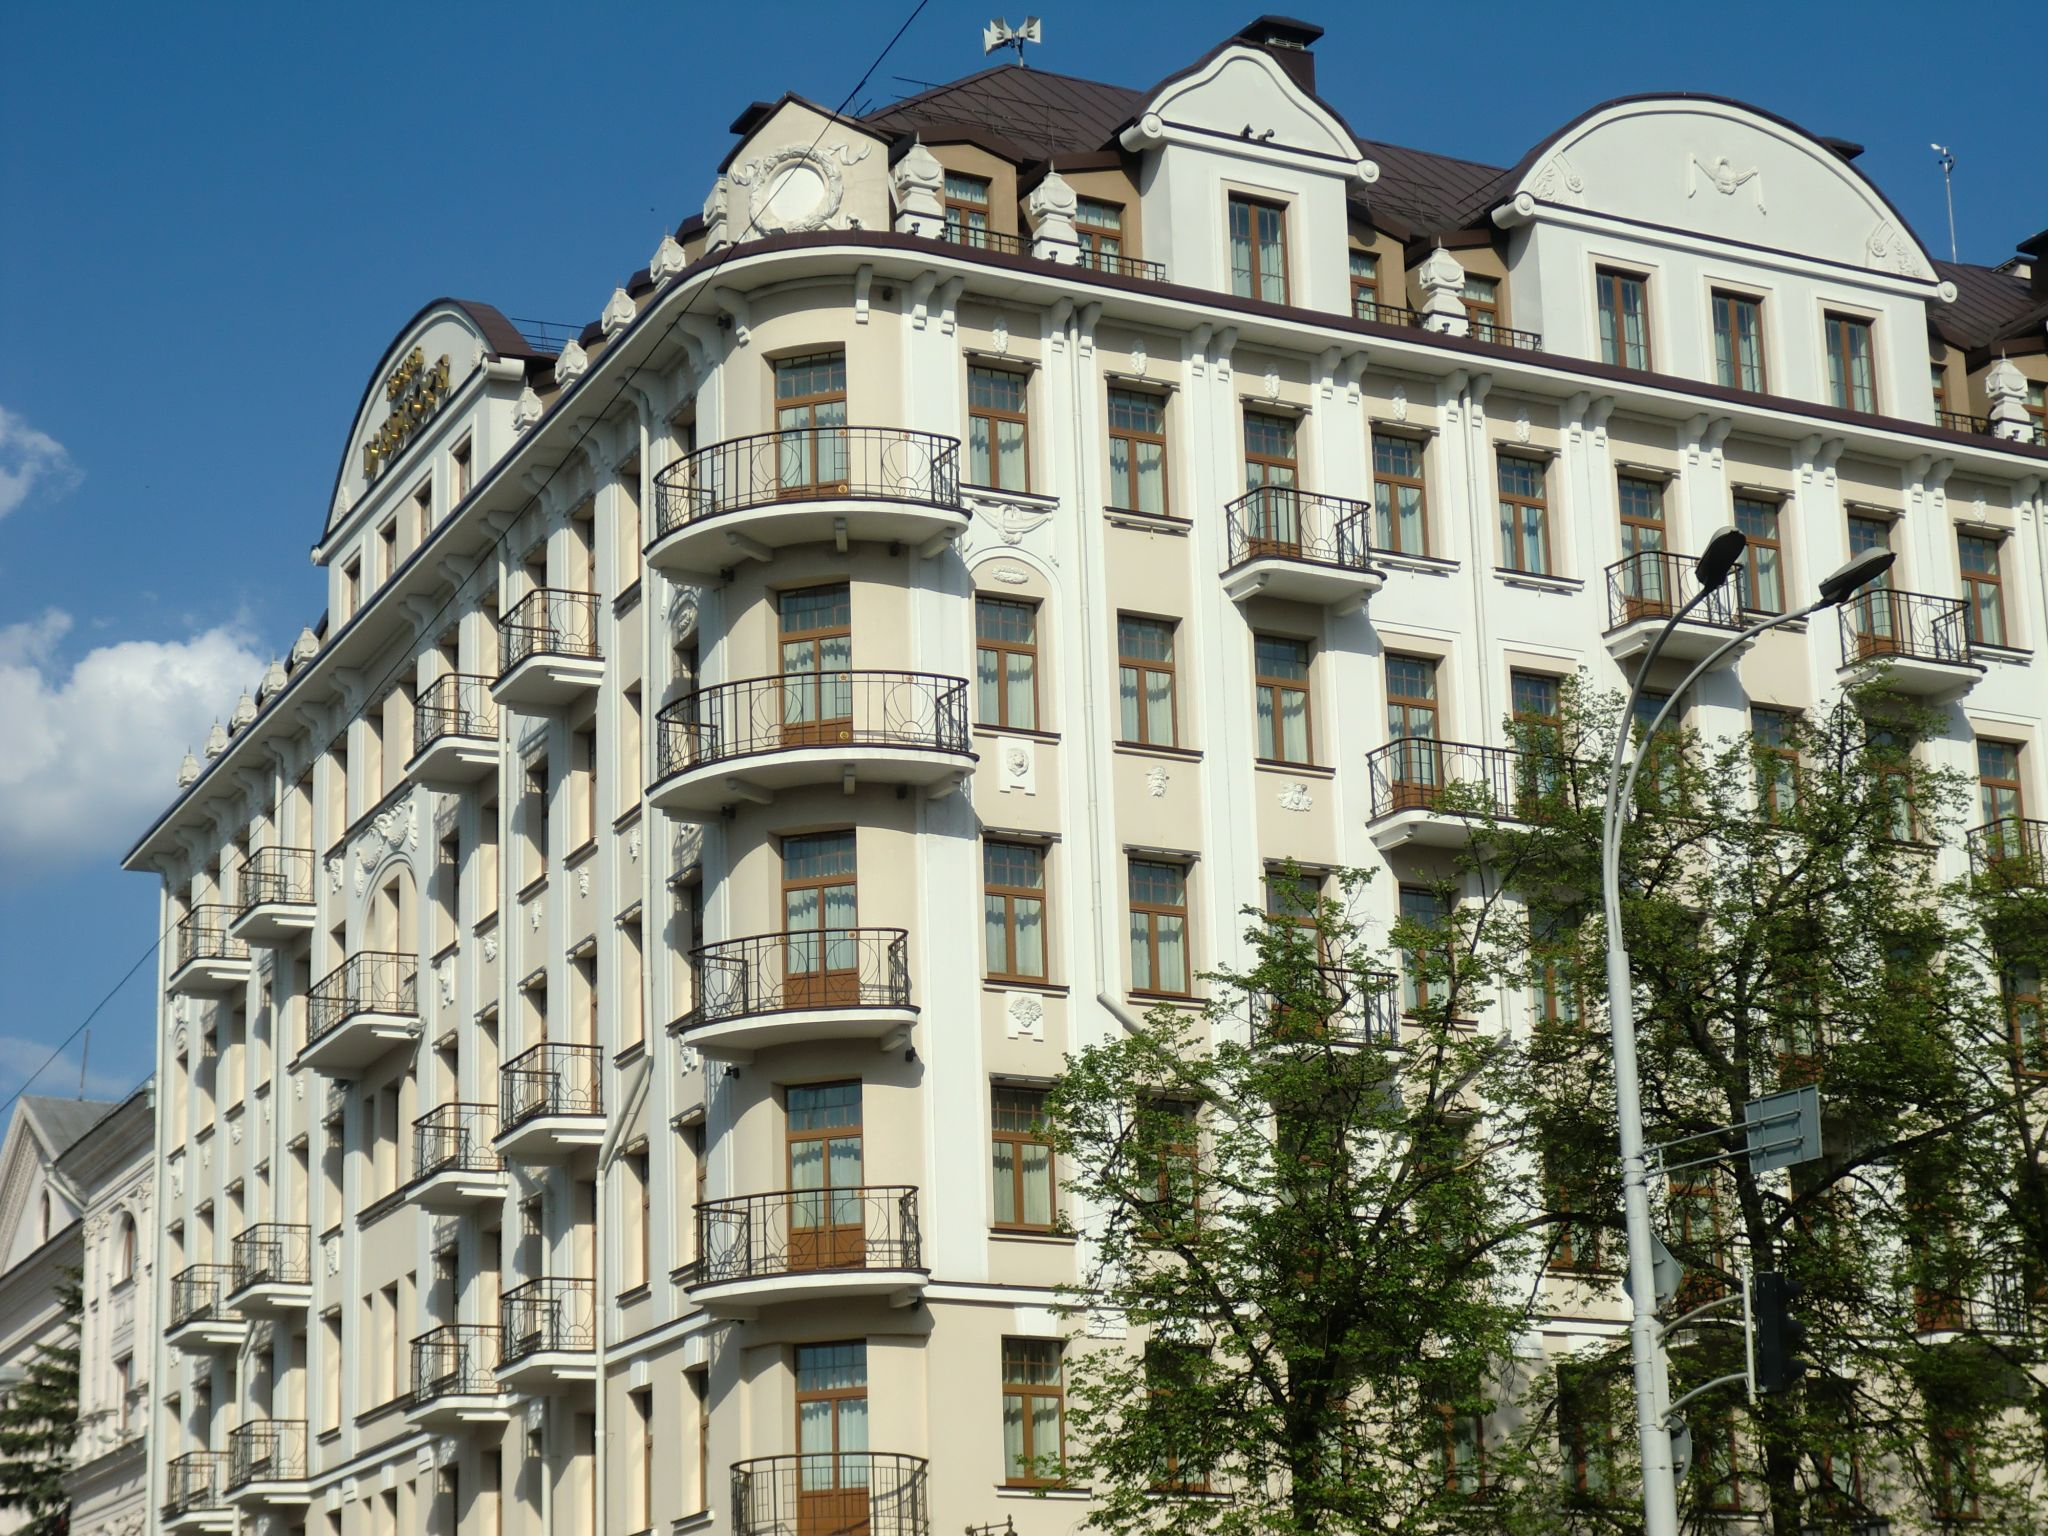 Minsk hotel 1 - Minsk, 1 amazing city you have to see